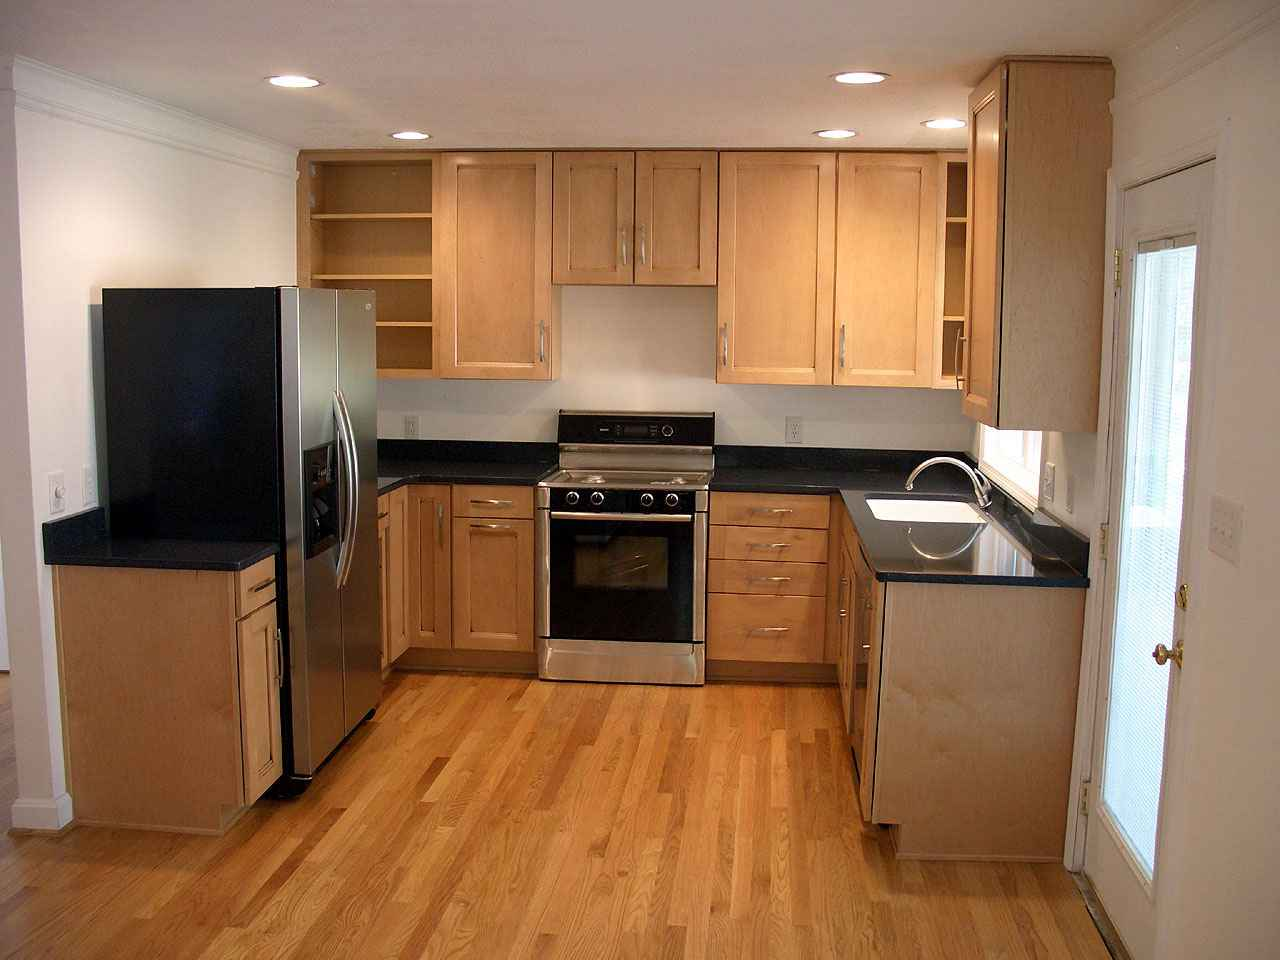 How To Get Cheap Kitchen Cabinets Cheap Cabinets For Kitchens Shopping Tips